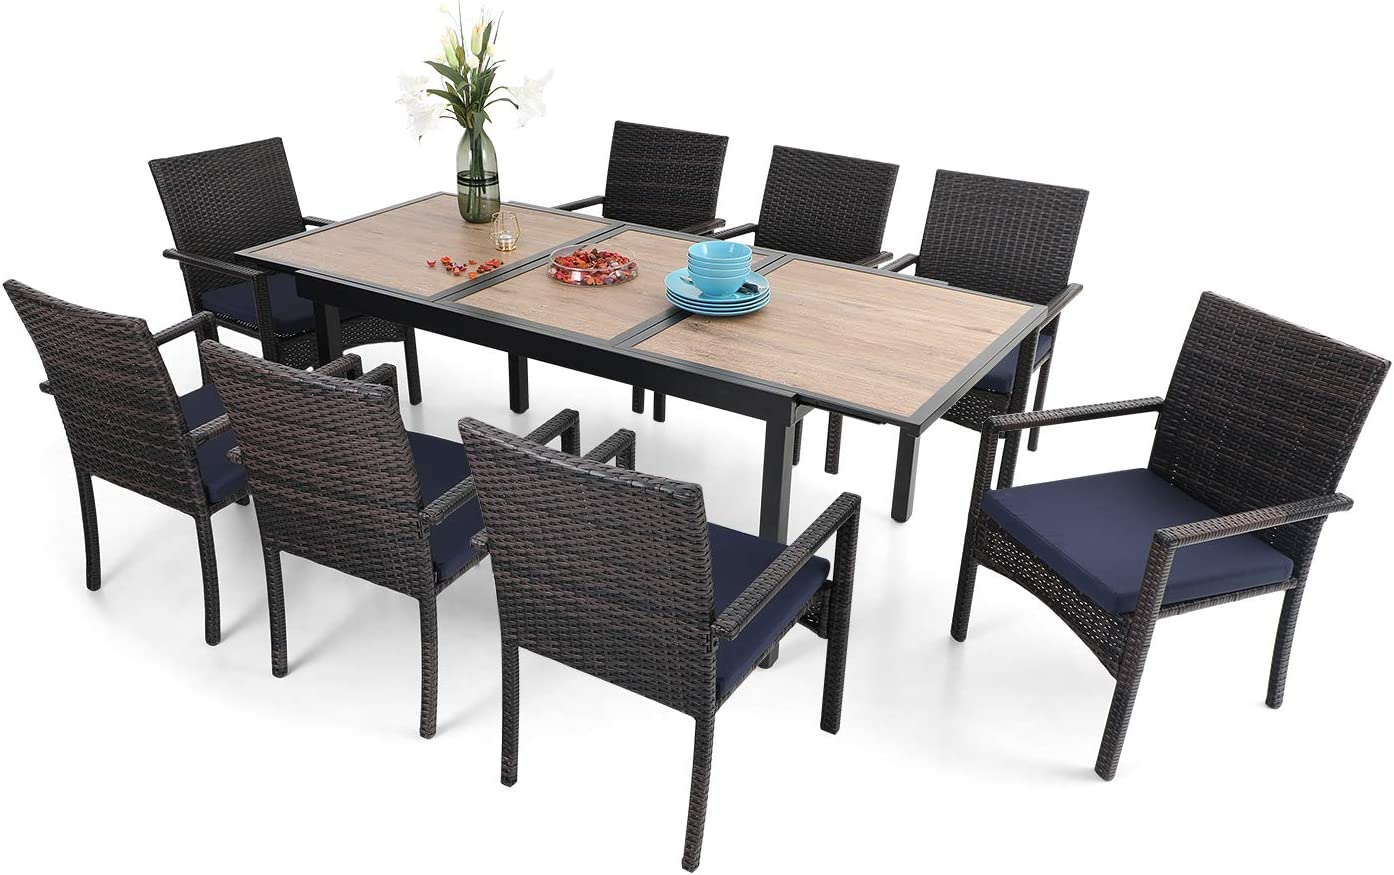 PHI VILLA 9 Piece Outdoor Dining Table Sets, Expandable Rectangular Metal Table with Wood Like Tabletop and 8 Rattan Chairs for Patio, Deck, Yard